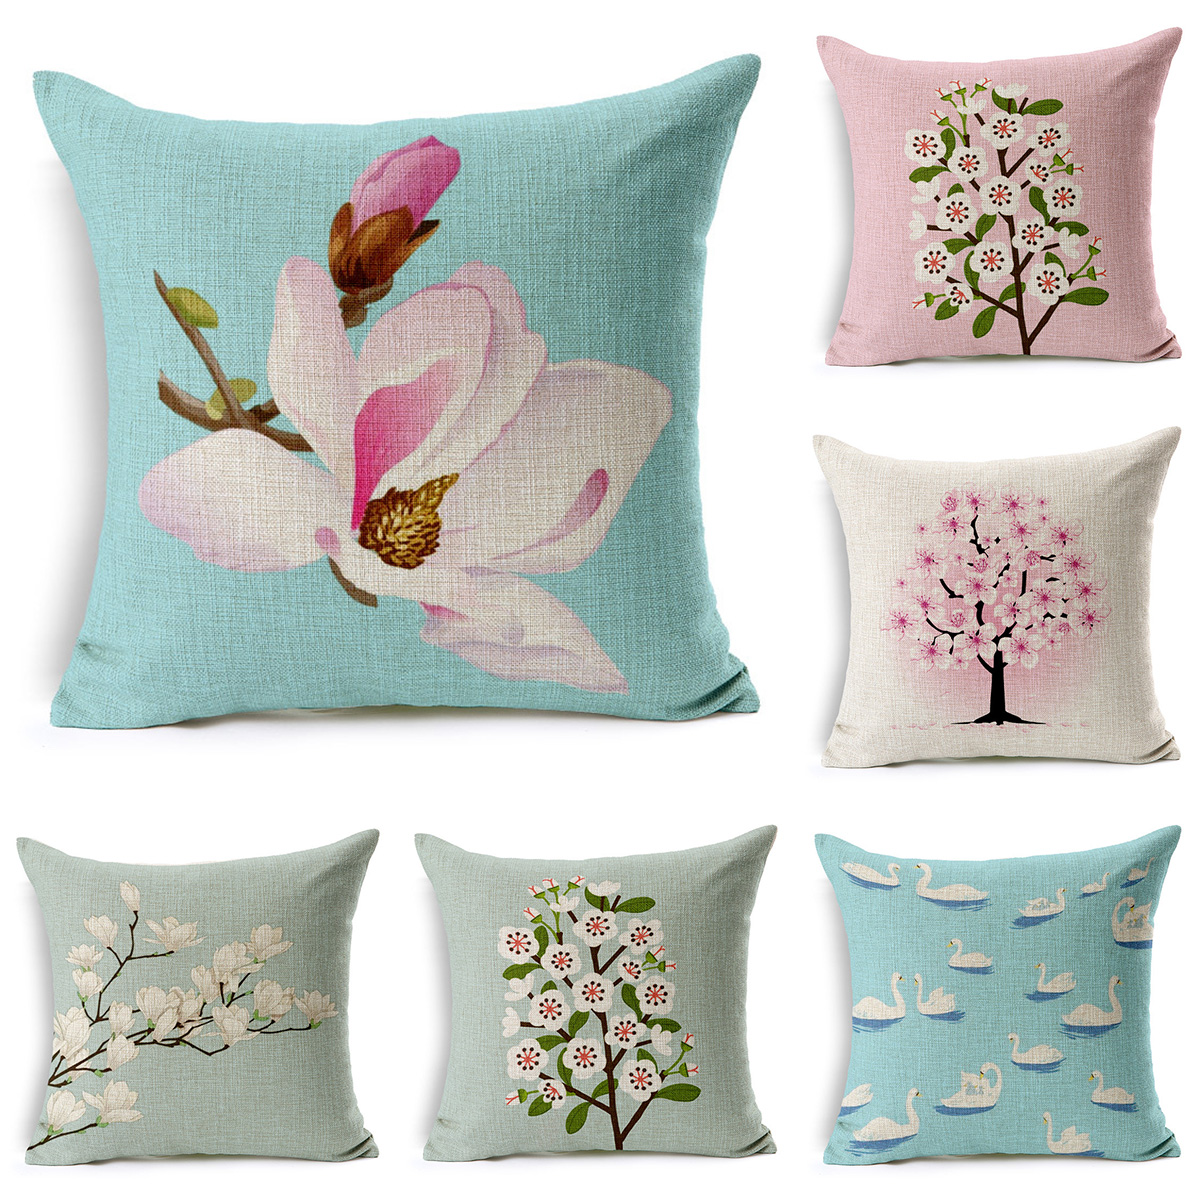 Home Decor Hand Painted Flower Cushion Cover Cotton Linen Throw